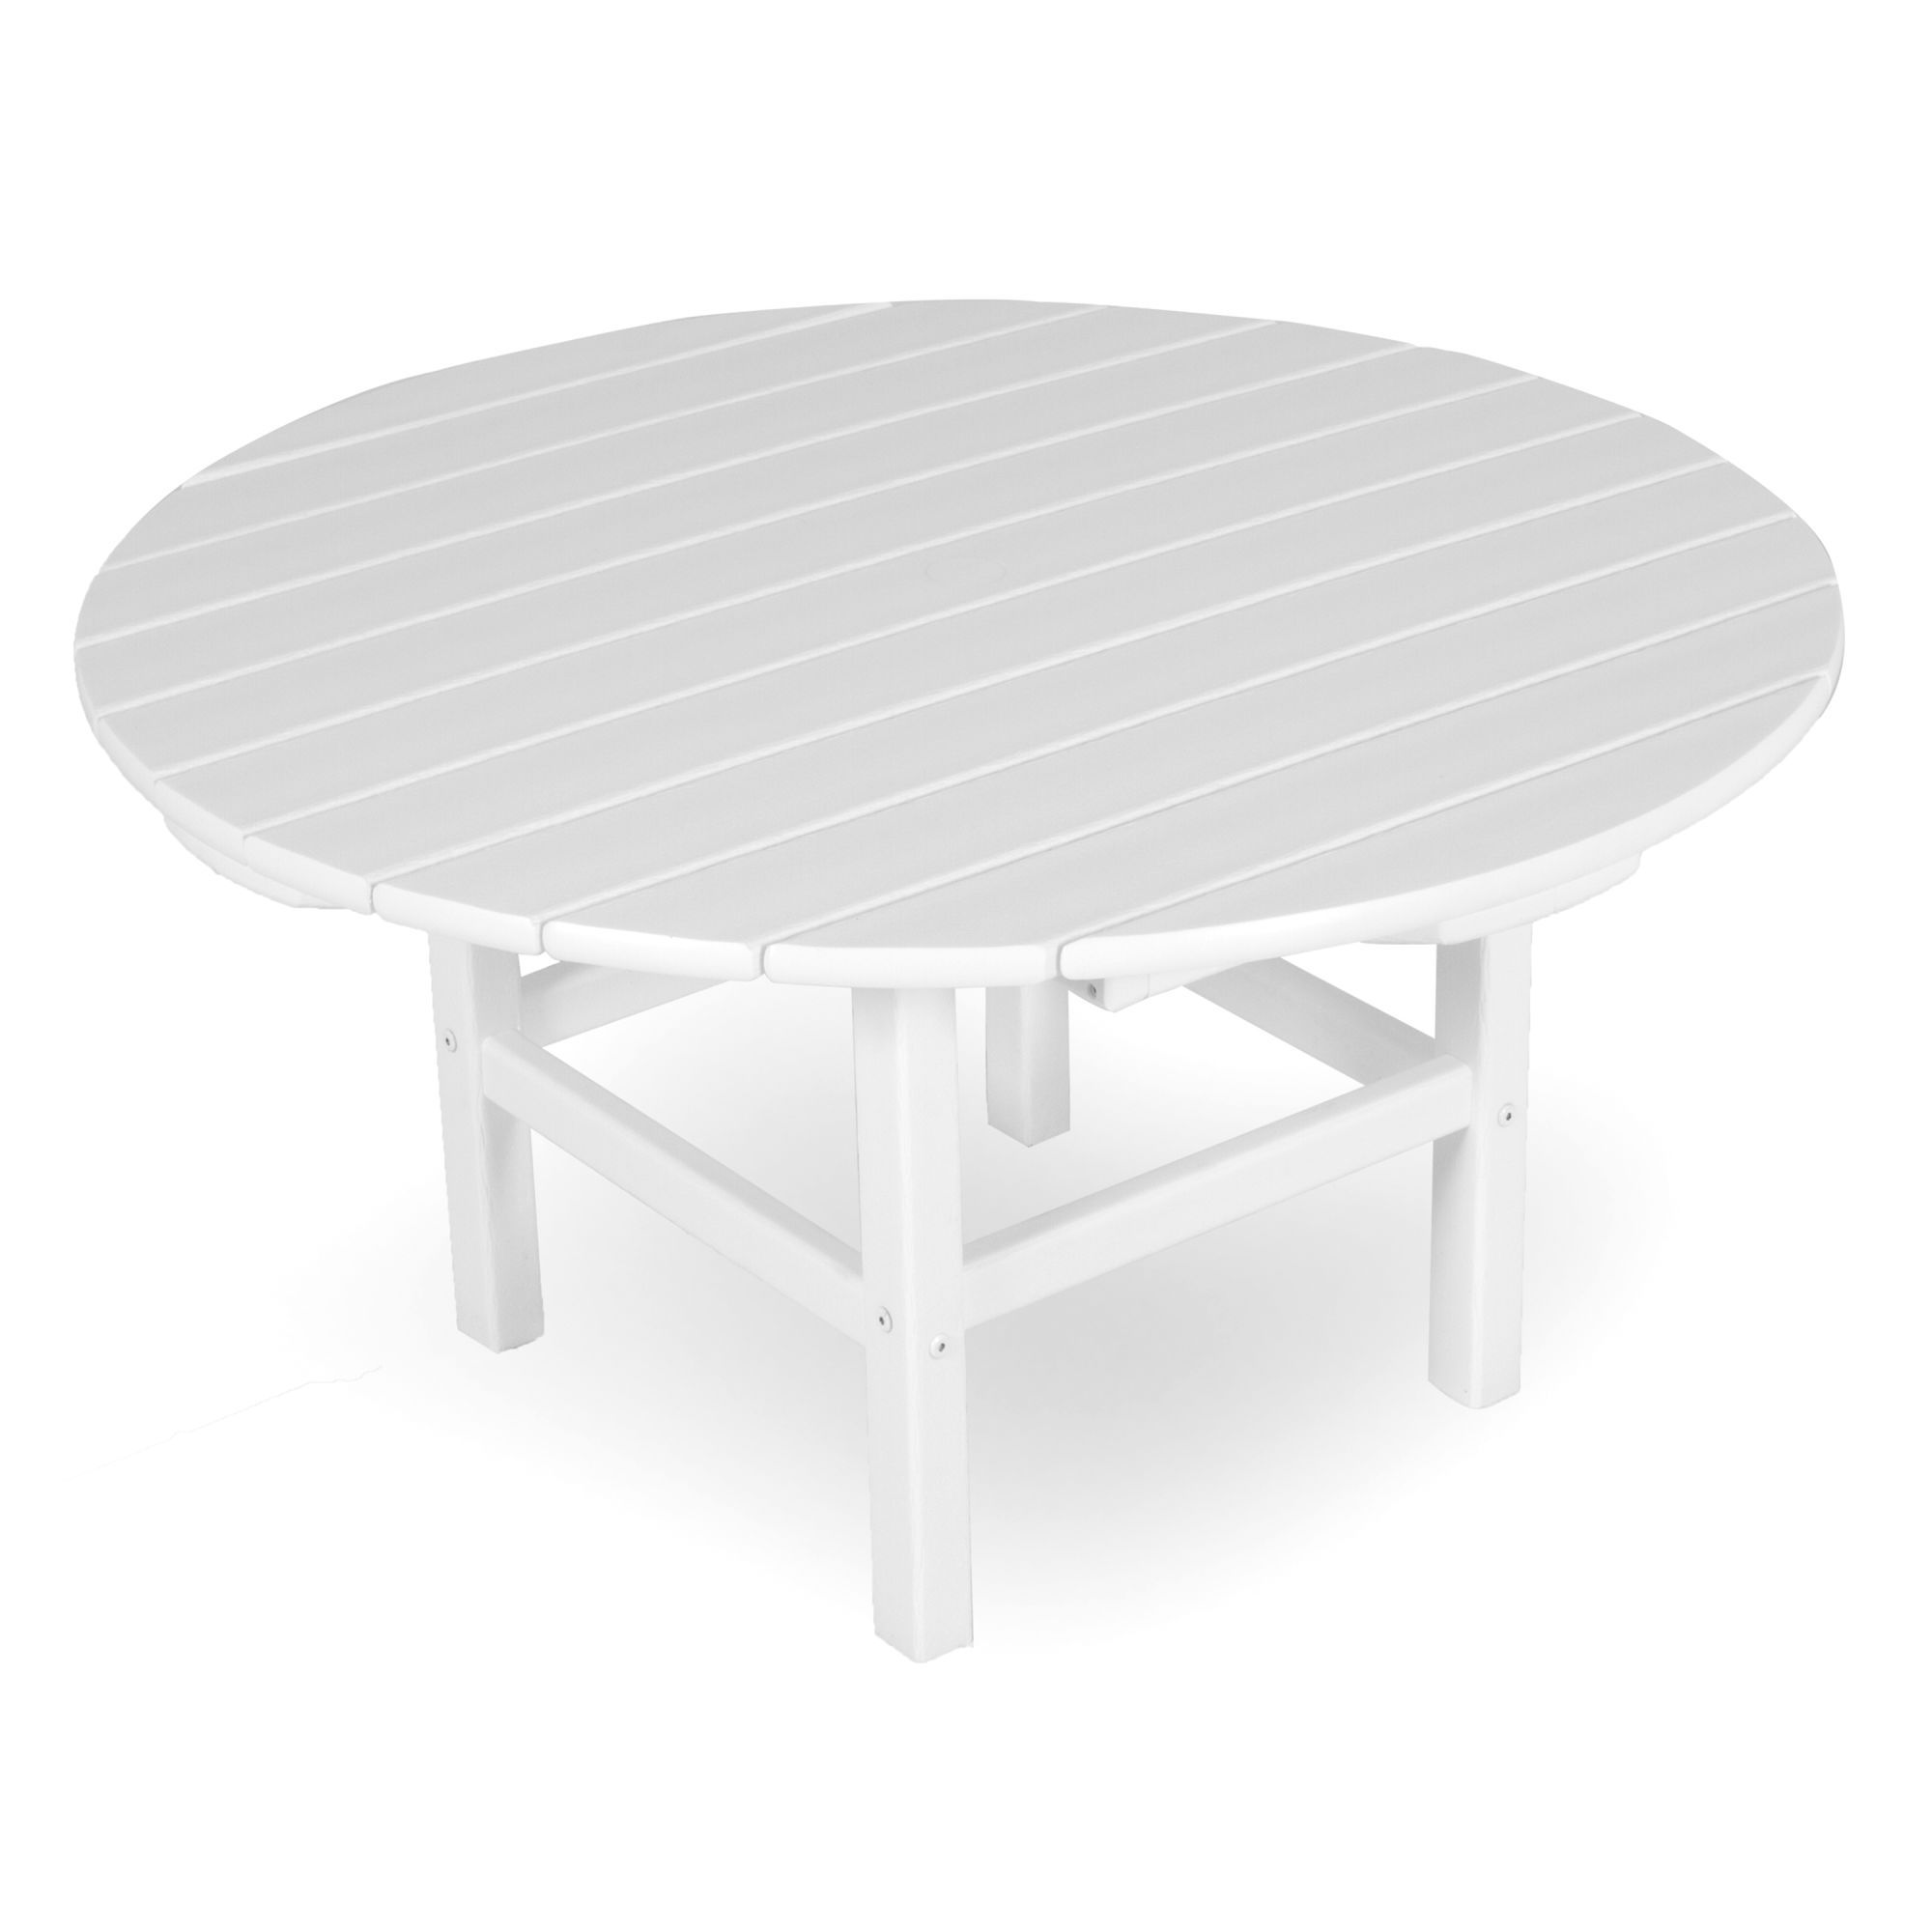 Round 38 Conversation Table In 2021 Outdoor Tables And Chairs Outdoor Coffee Tables Outdoor Furniture [ 2000 x 2000 Pixel ]